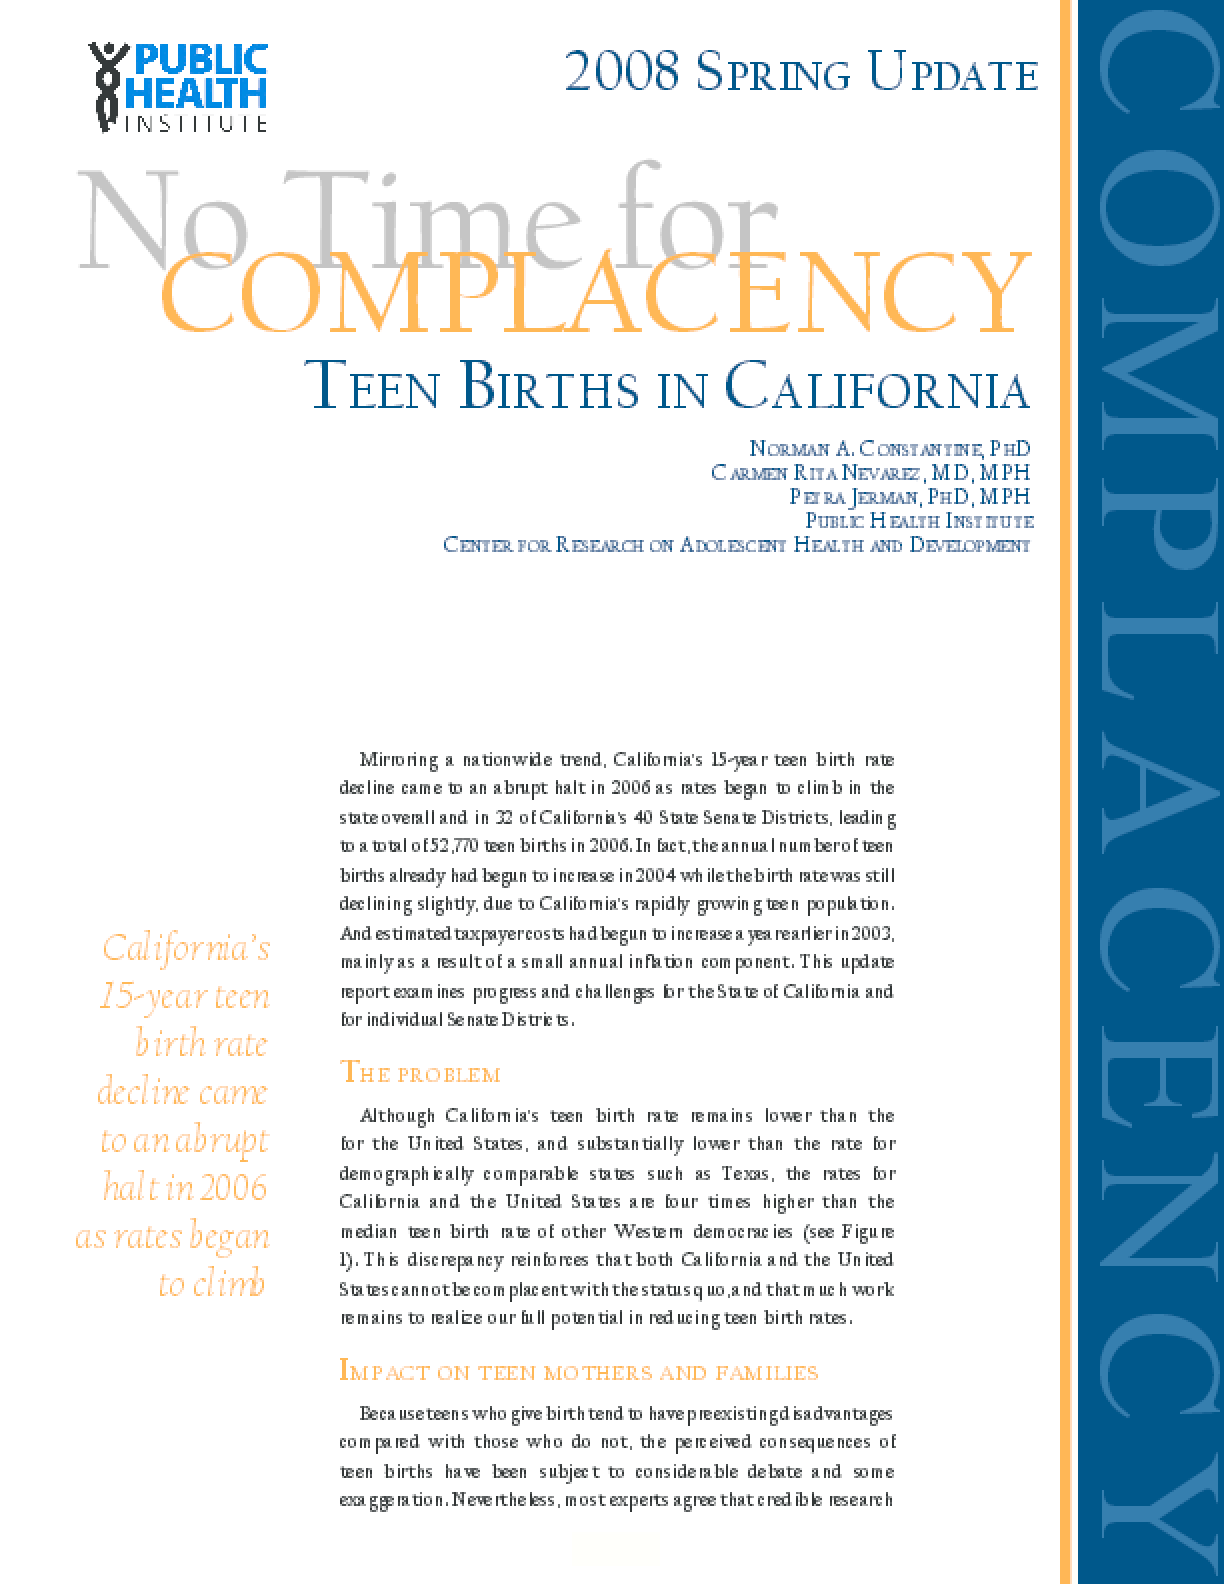 No Time for Complacency: Teen Births in California